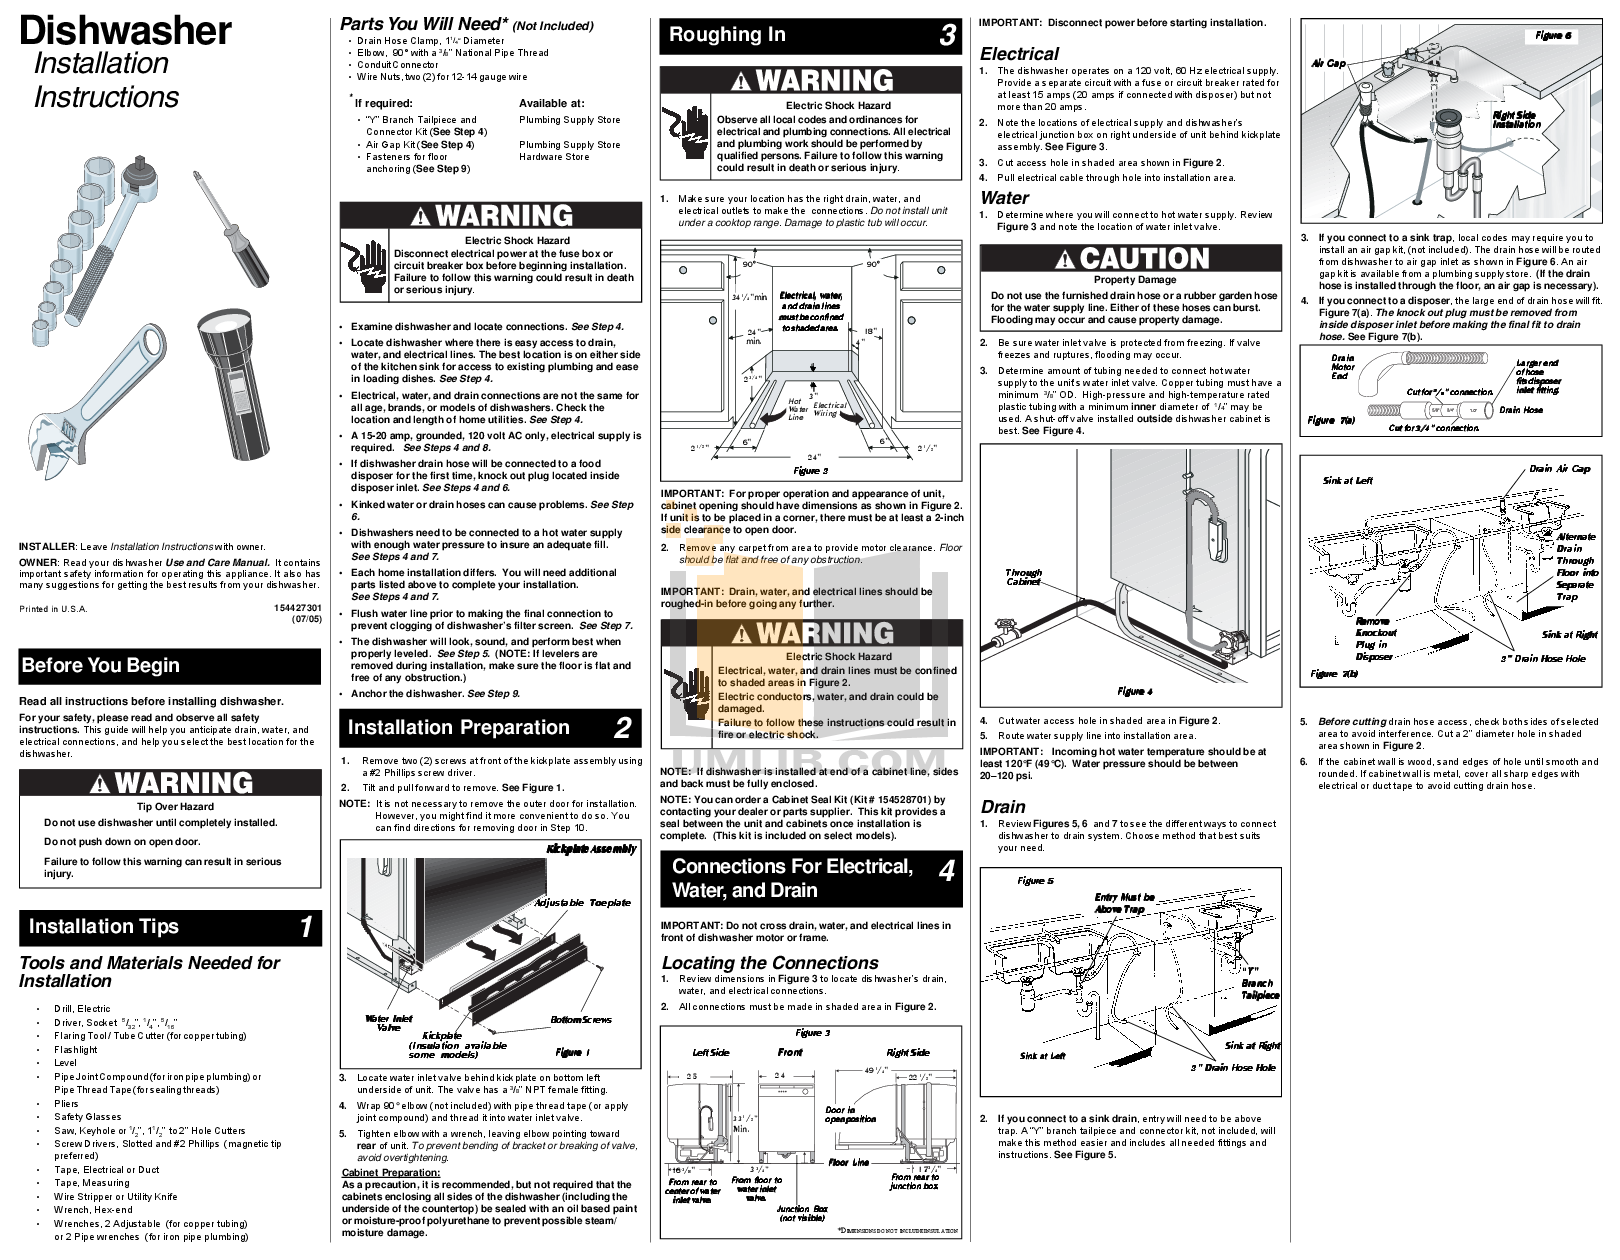 Schematics For Frigidaire Dishwasher Automotive Wiring Diagram And Parts List Dishwasherparts Sanyo Library Rh 44 Skriptoase De Gallery